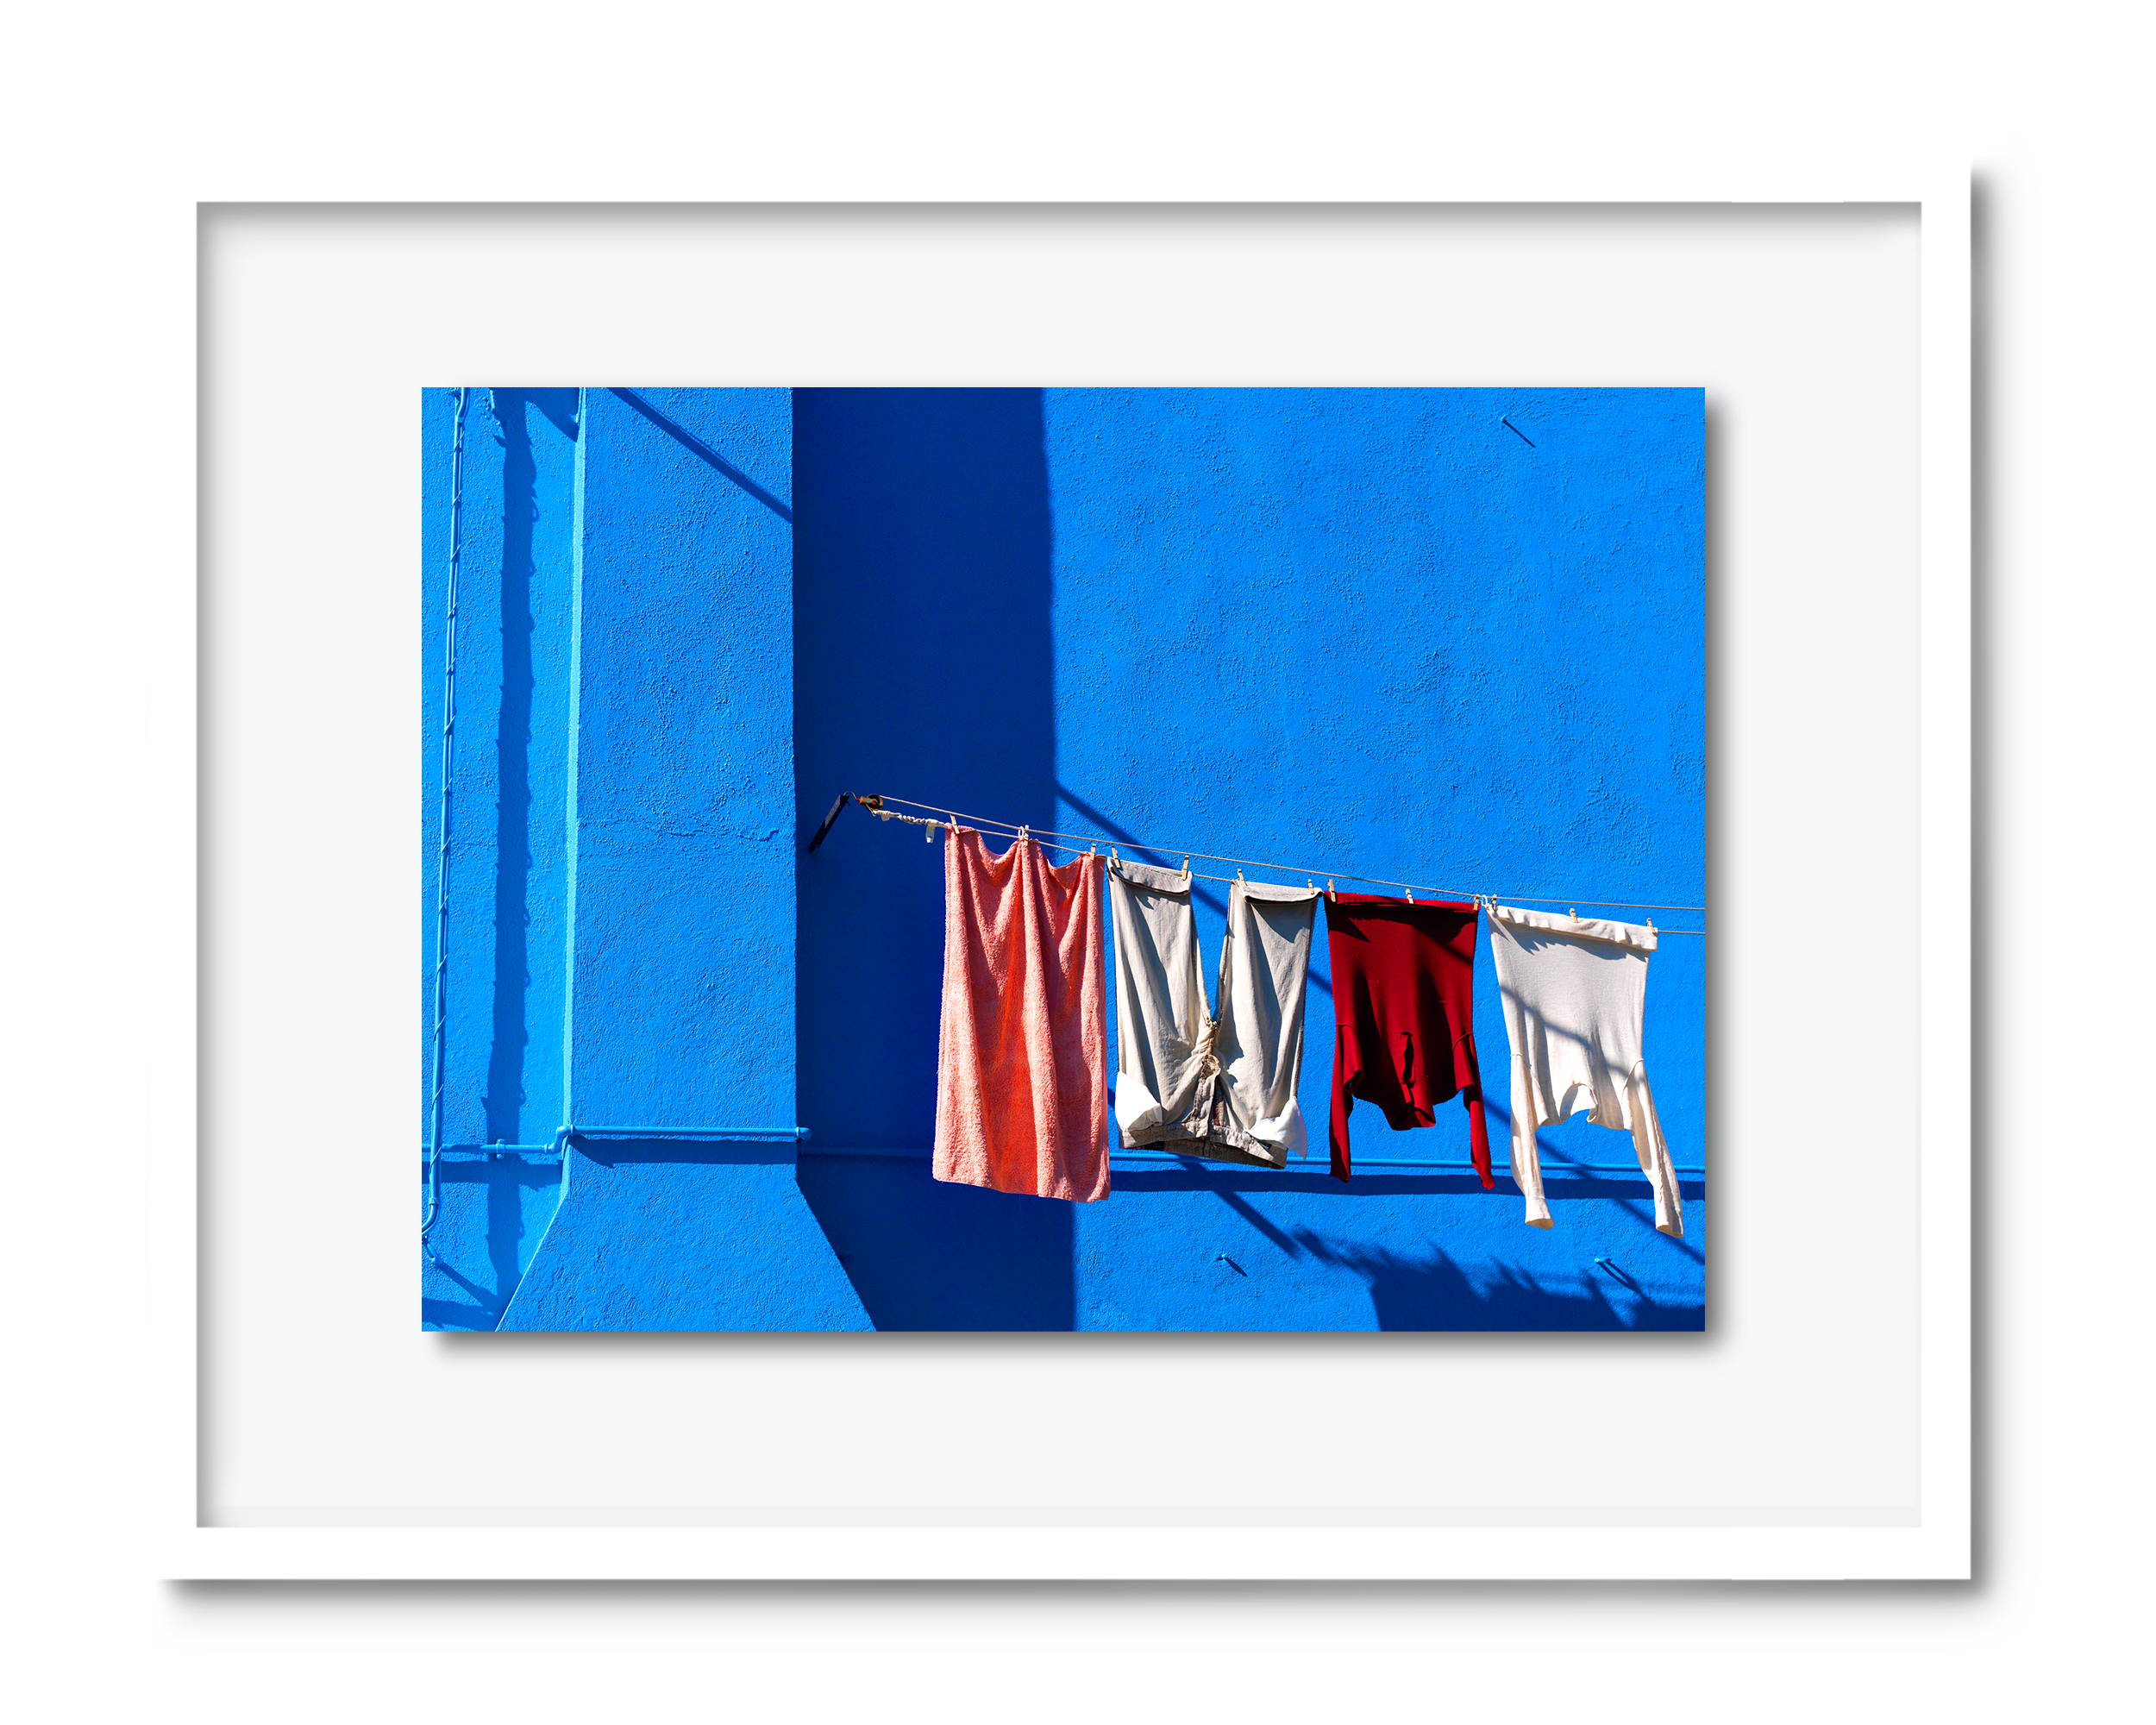 19.david-pearce-blue-building-venice.png